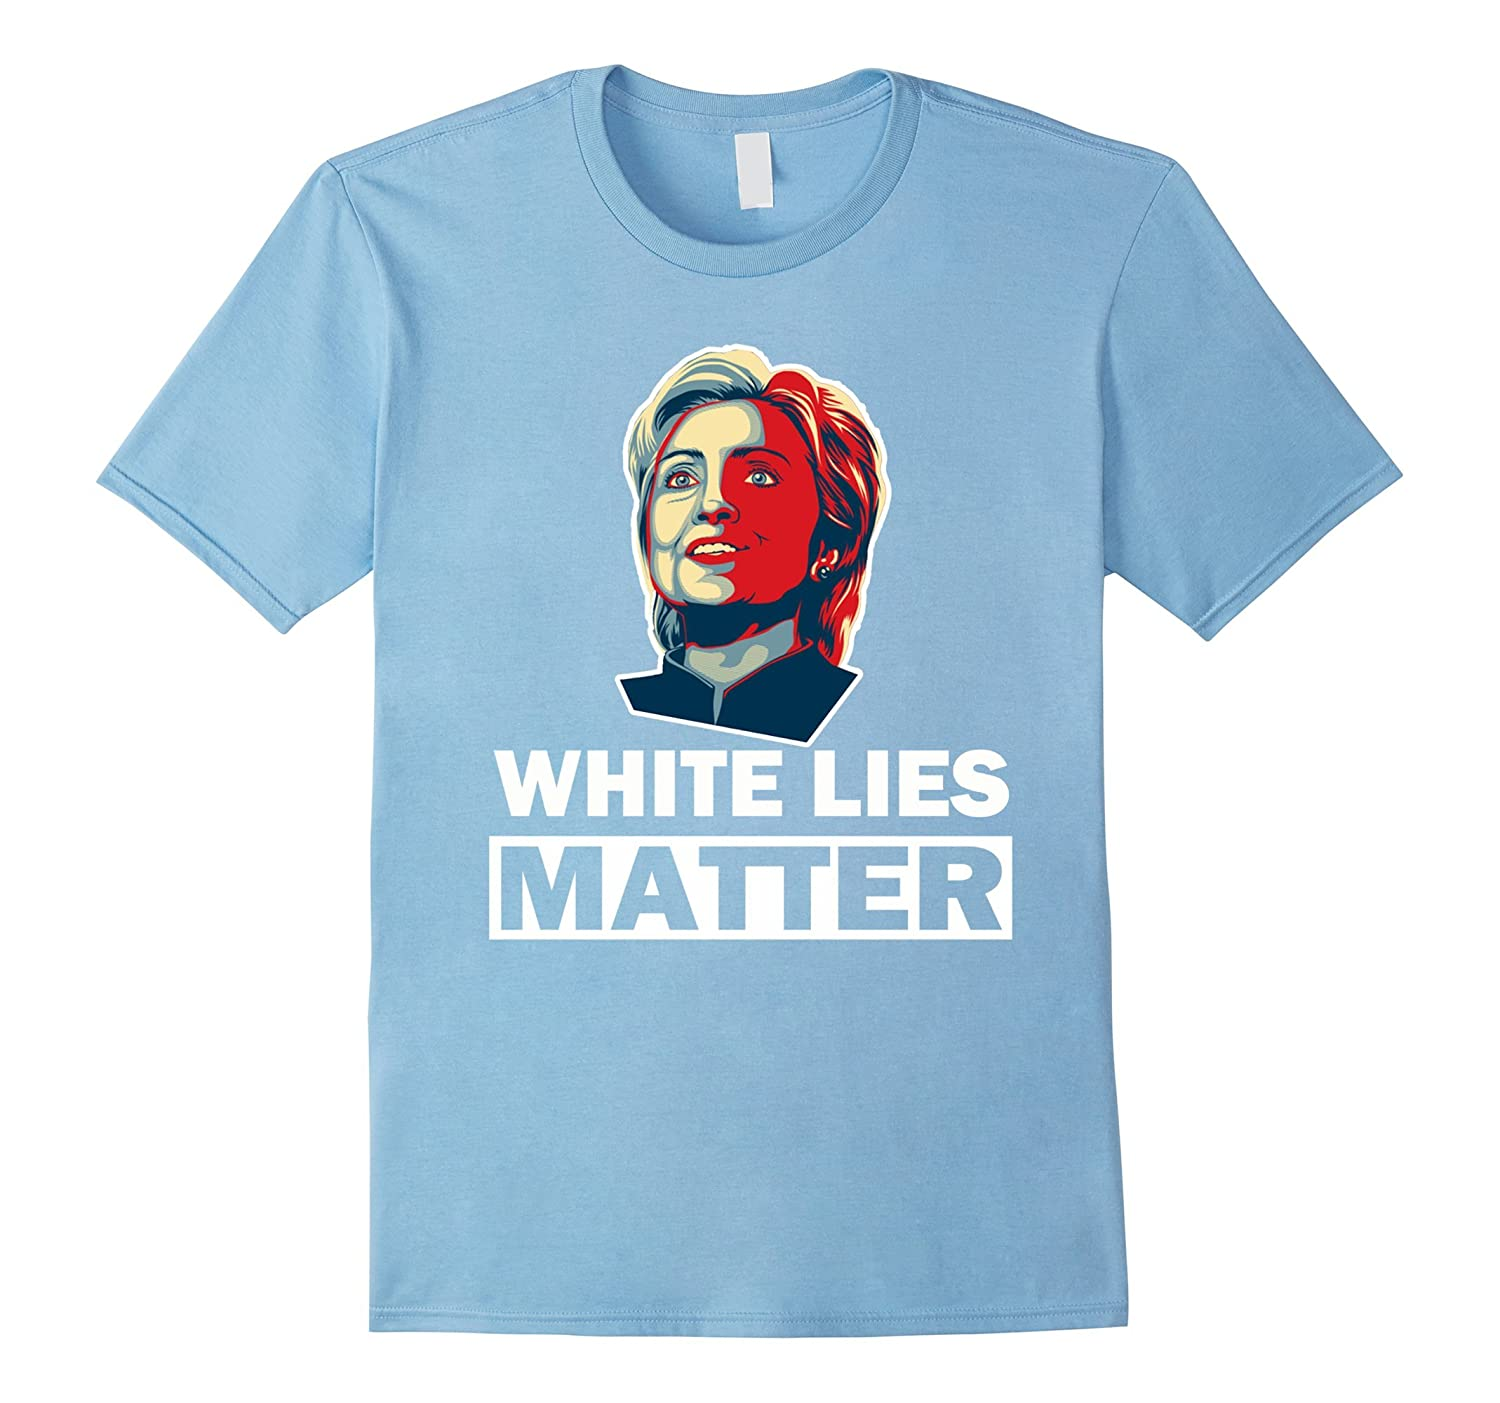 Hillary Clinton White lies matter - Anti Hillary t shirt-RT